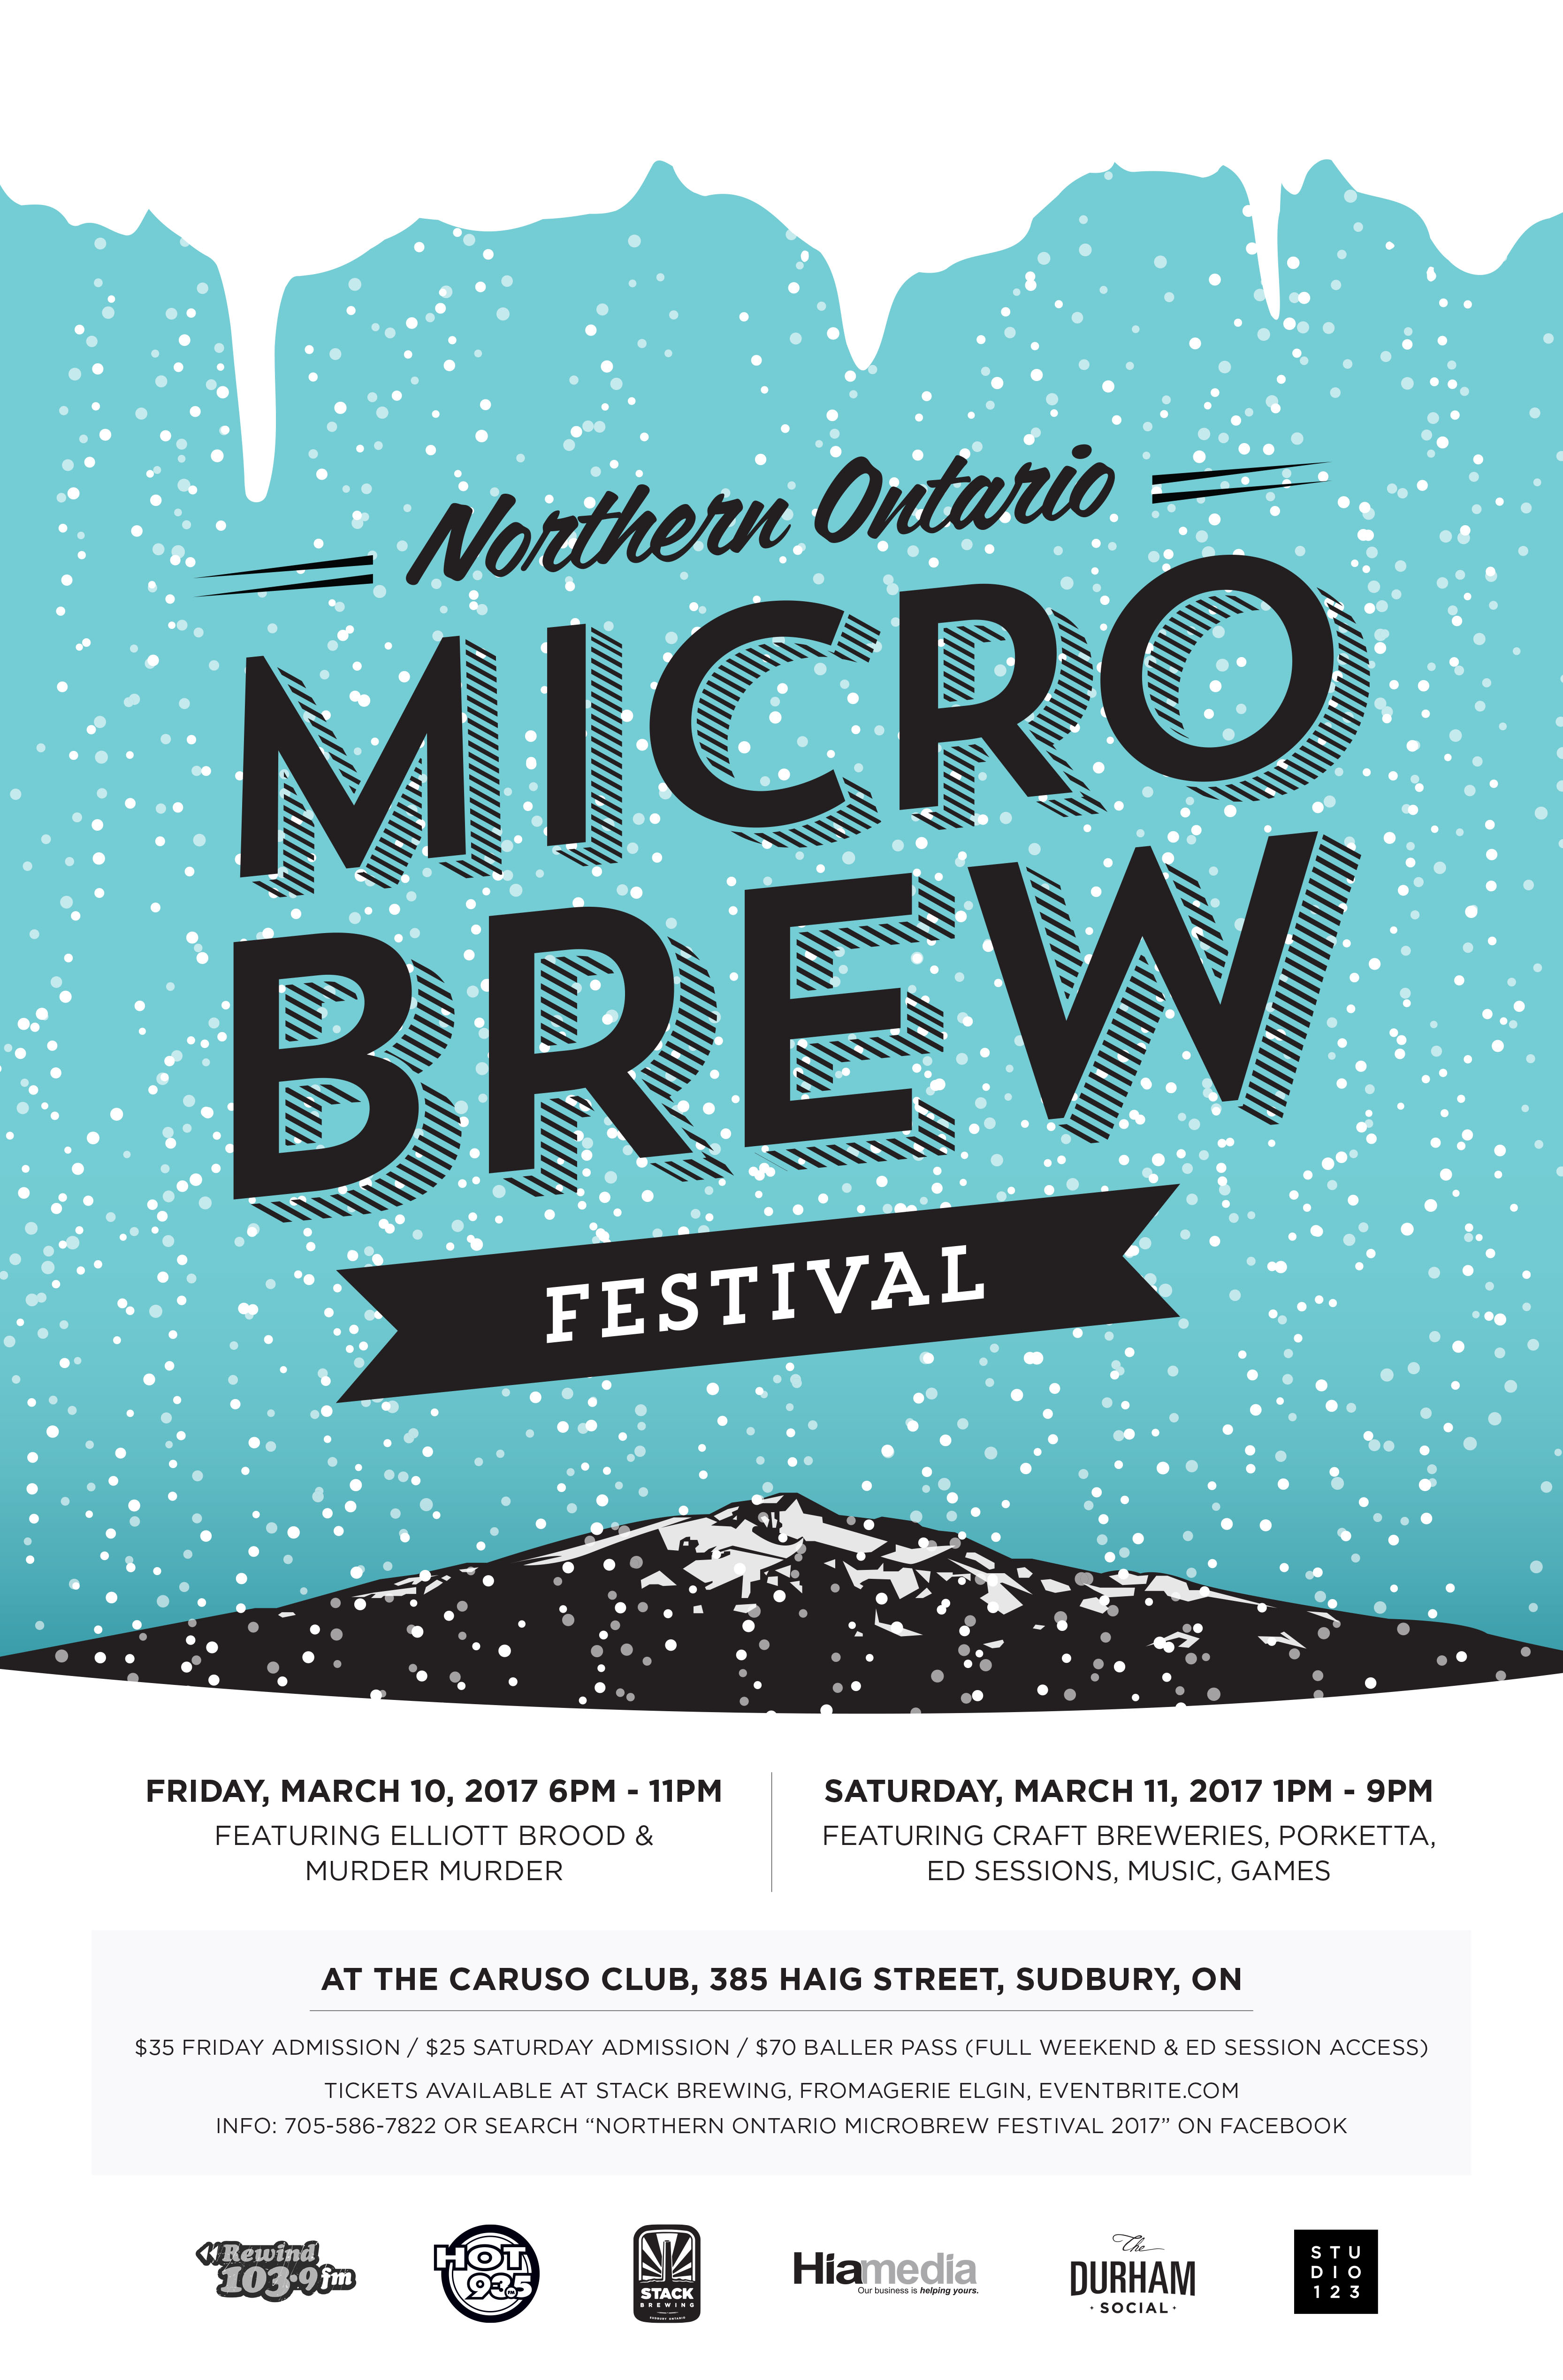 Northern Ontario Microbrew Festival: Two days of delicious craft beer